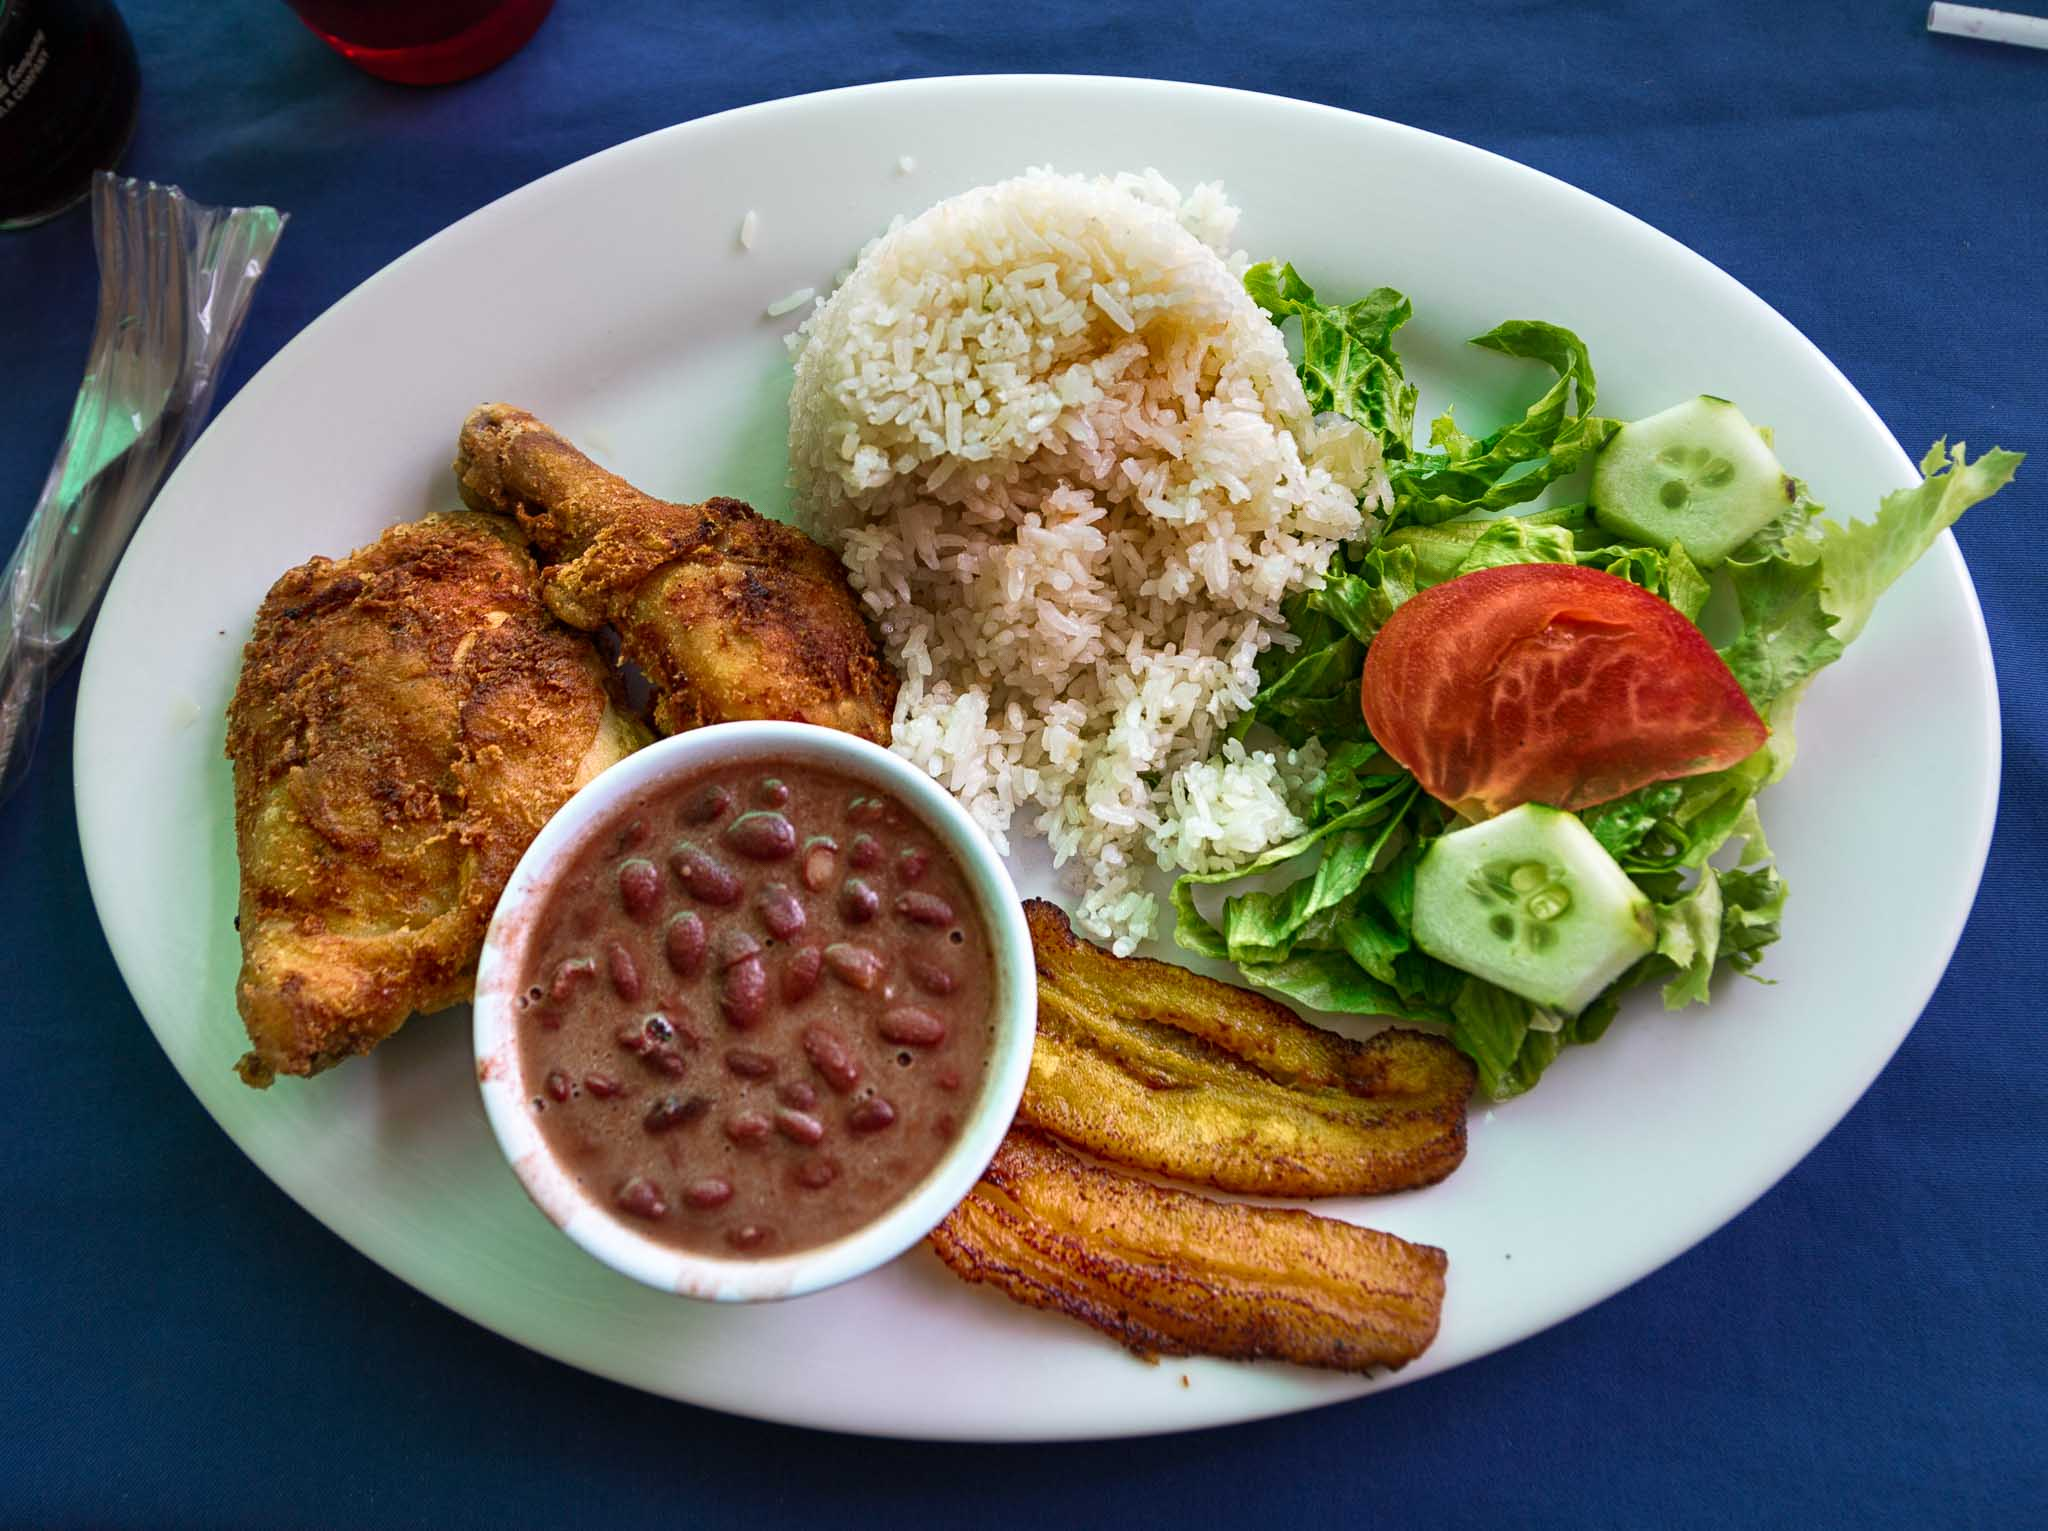 Costa rican meal by the sea costa rica cost of living update fried chicken casado by the sea 5 forumfinder Choice Image